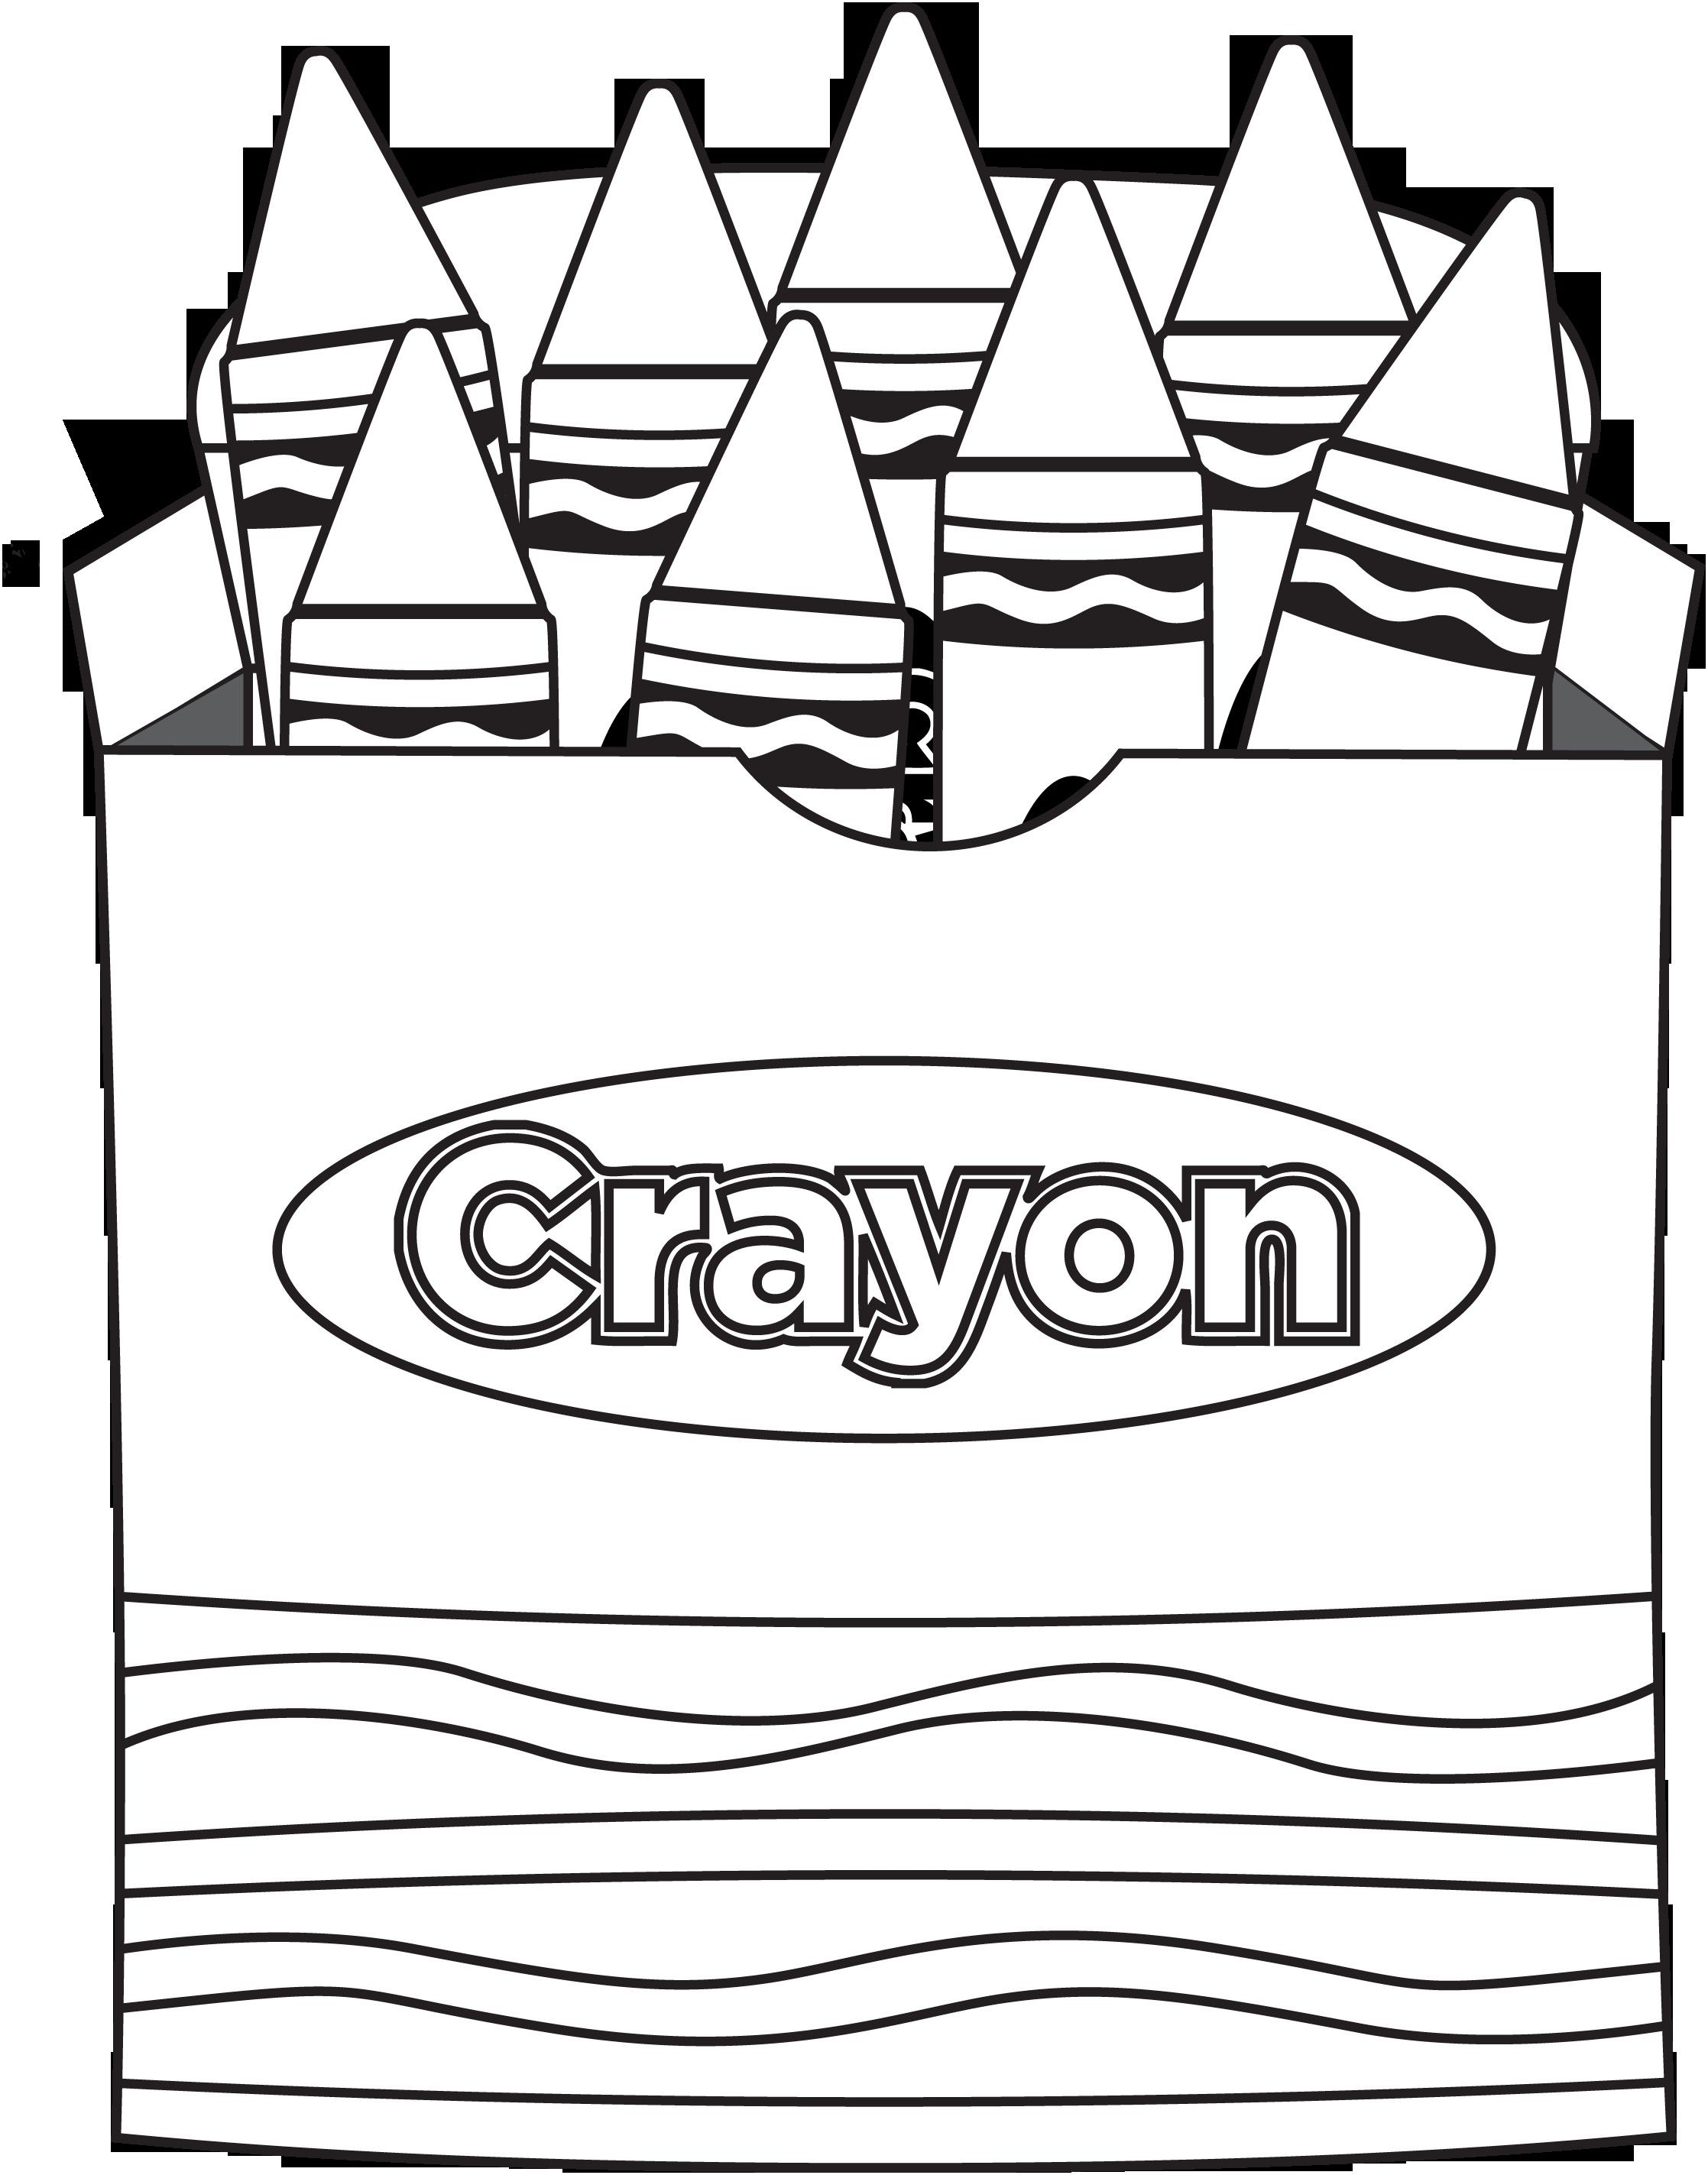 Crayola Poetry Coloring Page